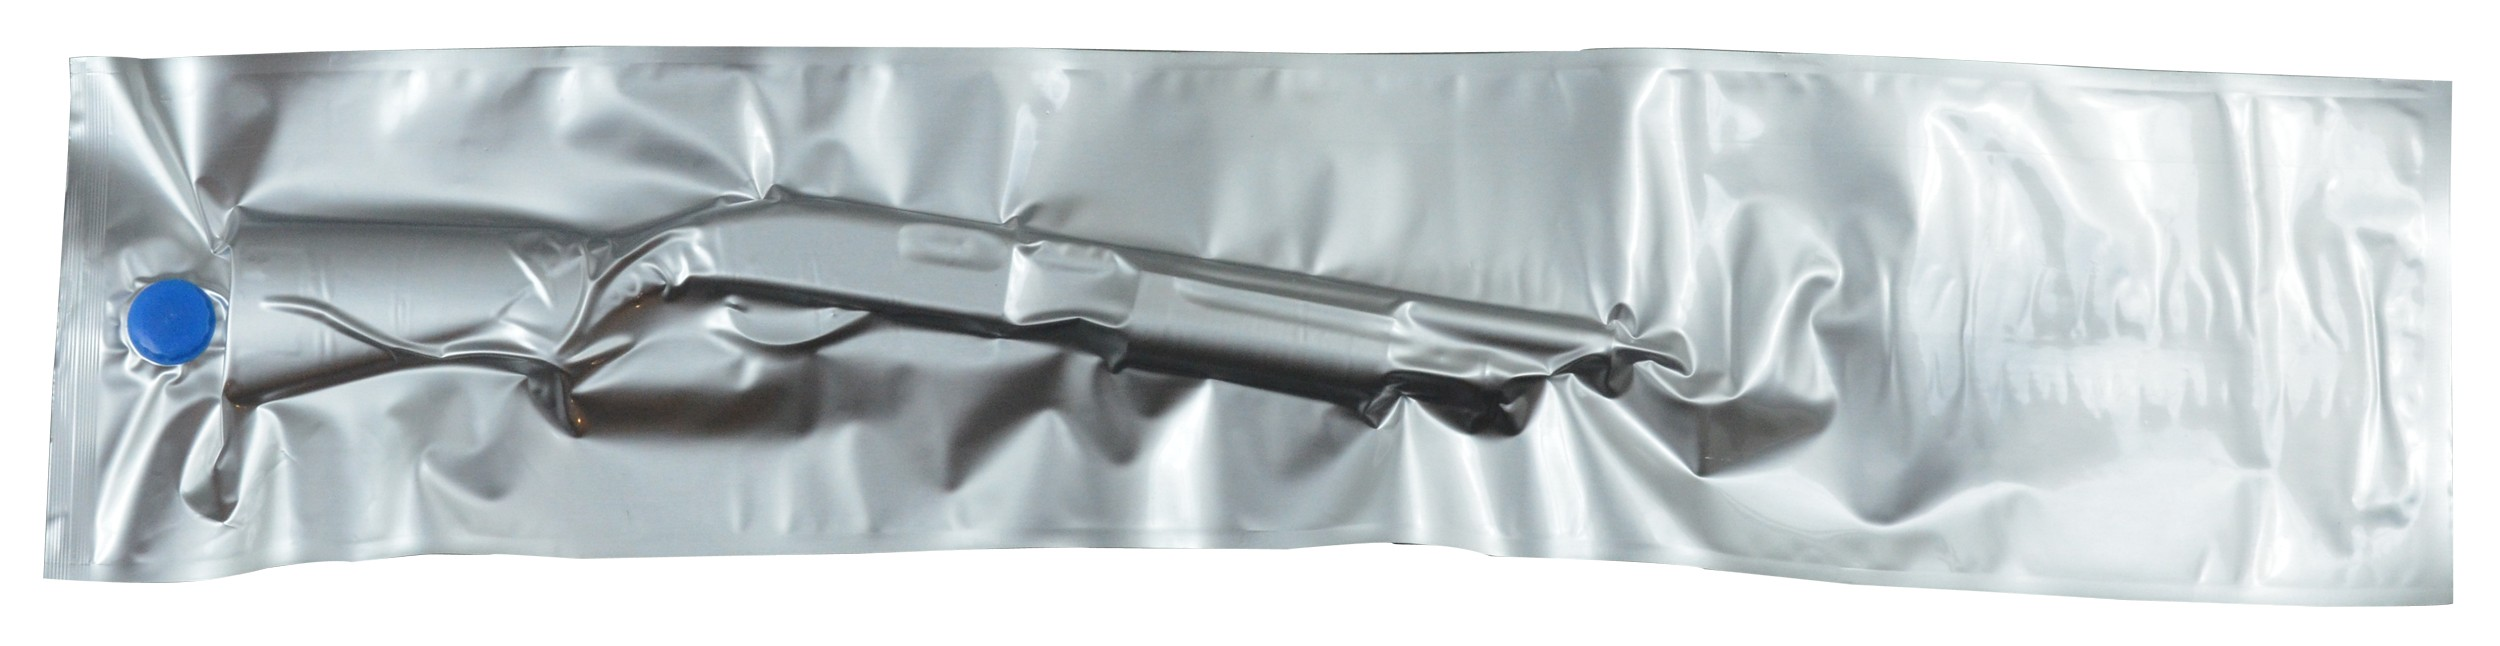 VCI Vacuum Gun Storage Bag